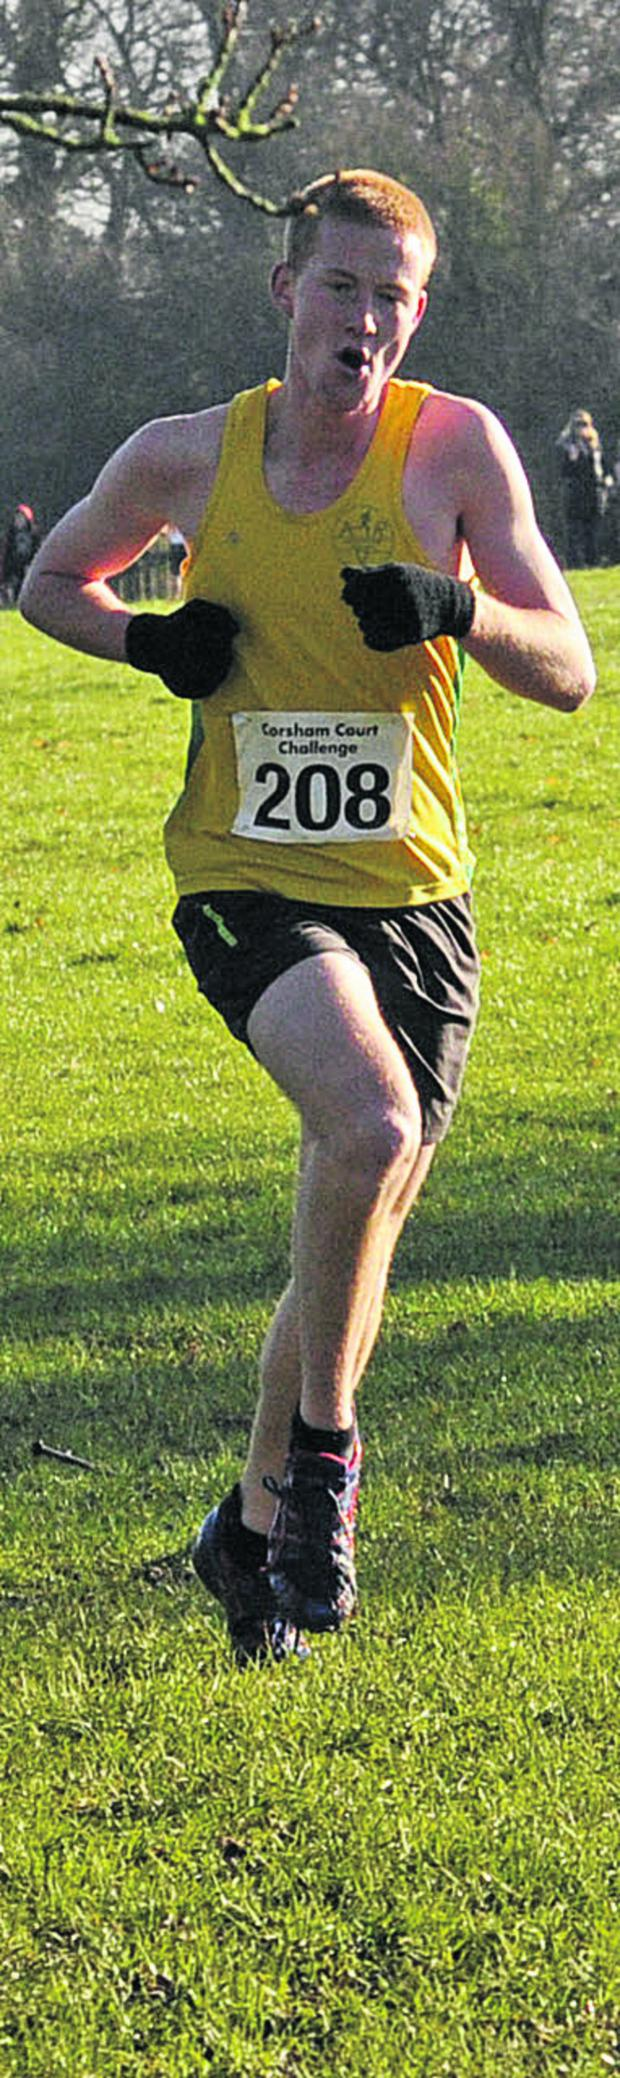 This Is Wiltshire: Avon Valley Runners' Michael Towler, on his way to victory on Sunday